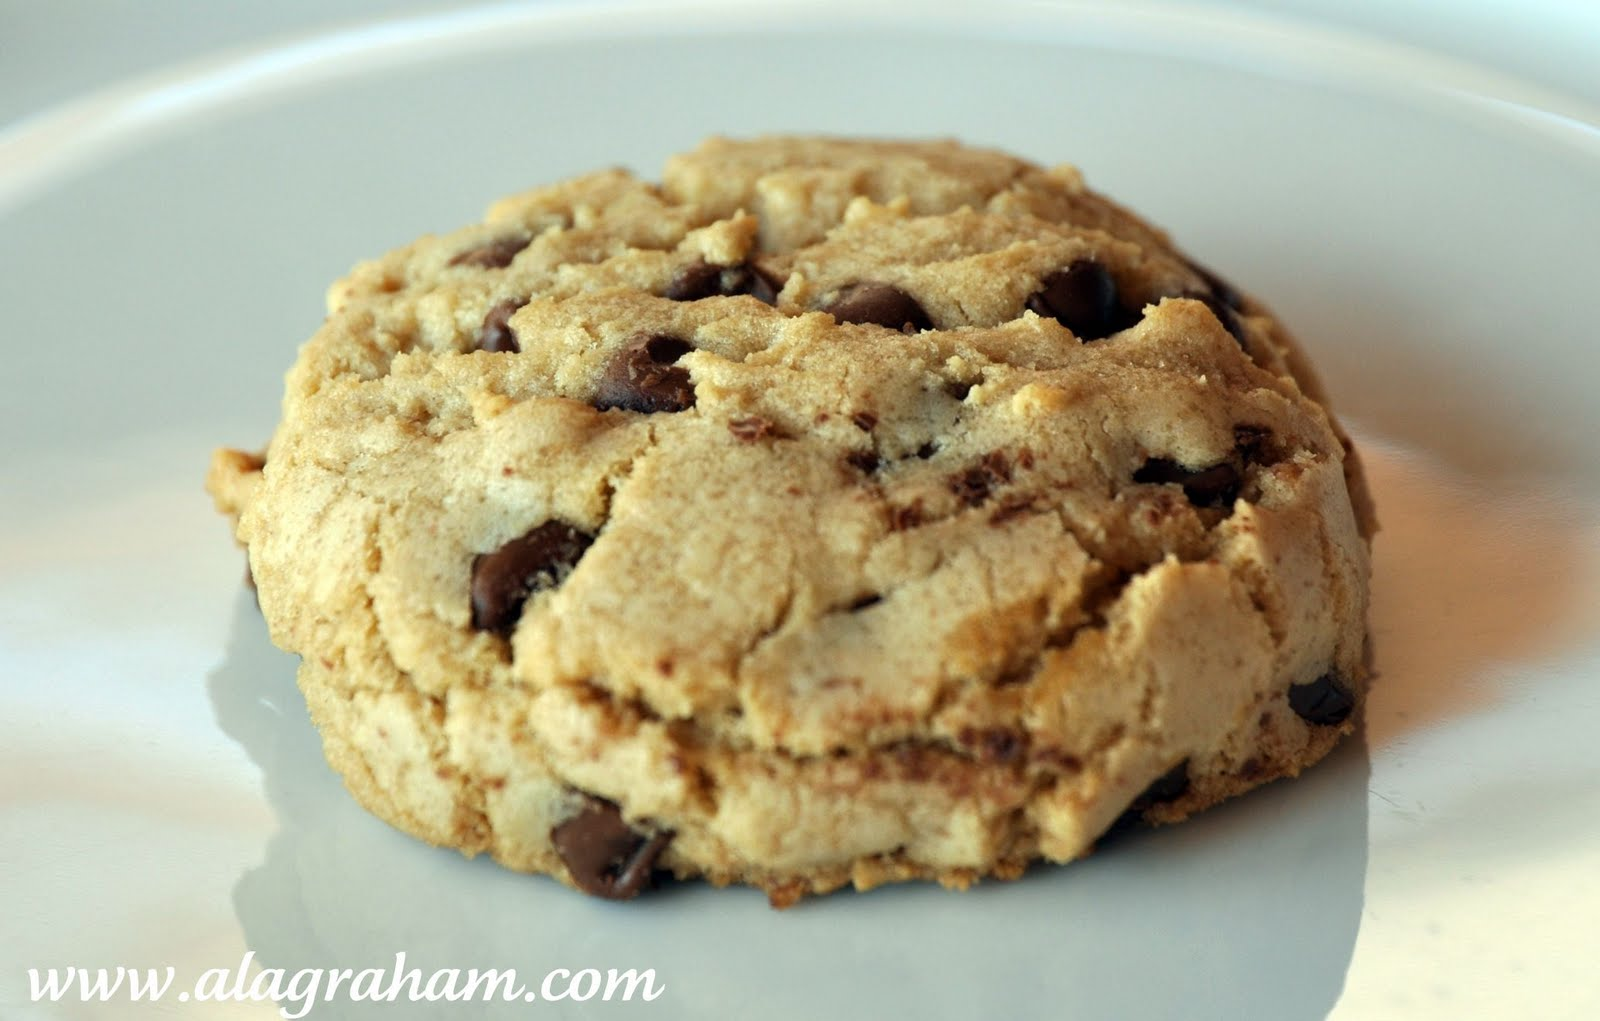 A La Graham  The Best Thick And Chewy Chocolate Chip Cookies